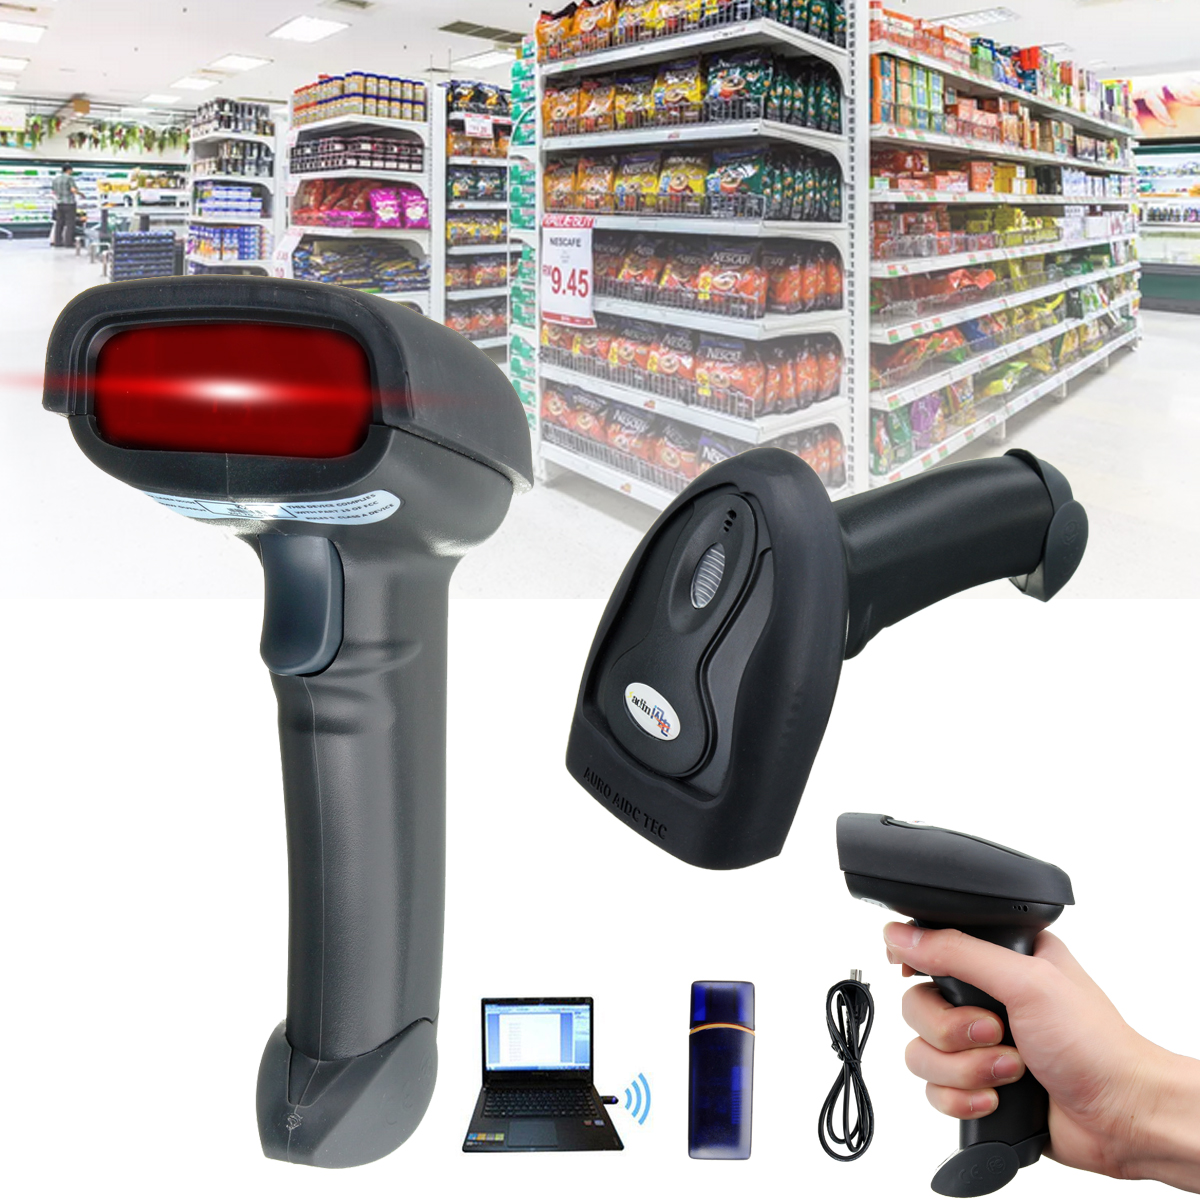 Wireless Scanner Wifi Laser Handheld Scanner Barcode 2.4G USB POS Scan Bar Code Scanner Reader Scan Gun for Supermarkets wireless barcode scanner bar code reader 2 4g 10m laser barcode scanner wireless wired for windows ce blueskysea free shipping